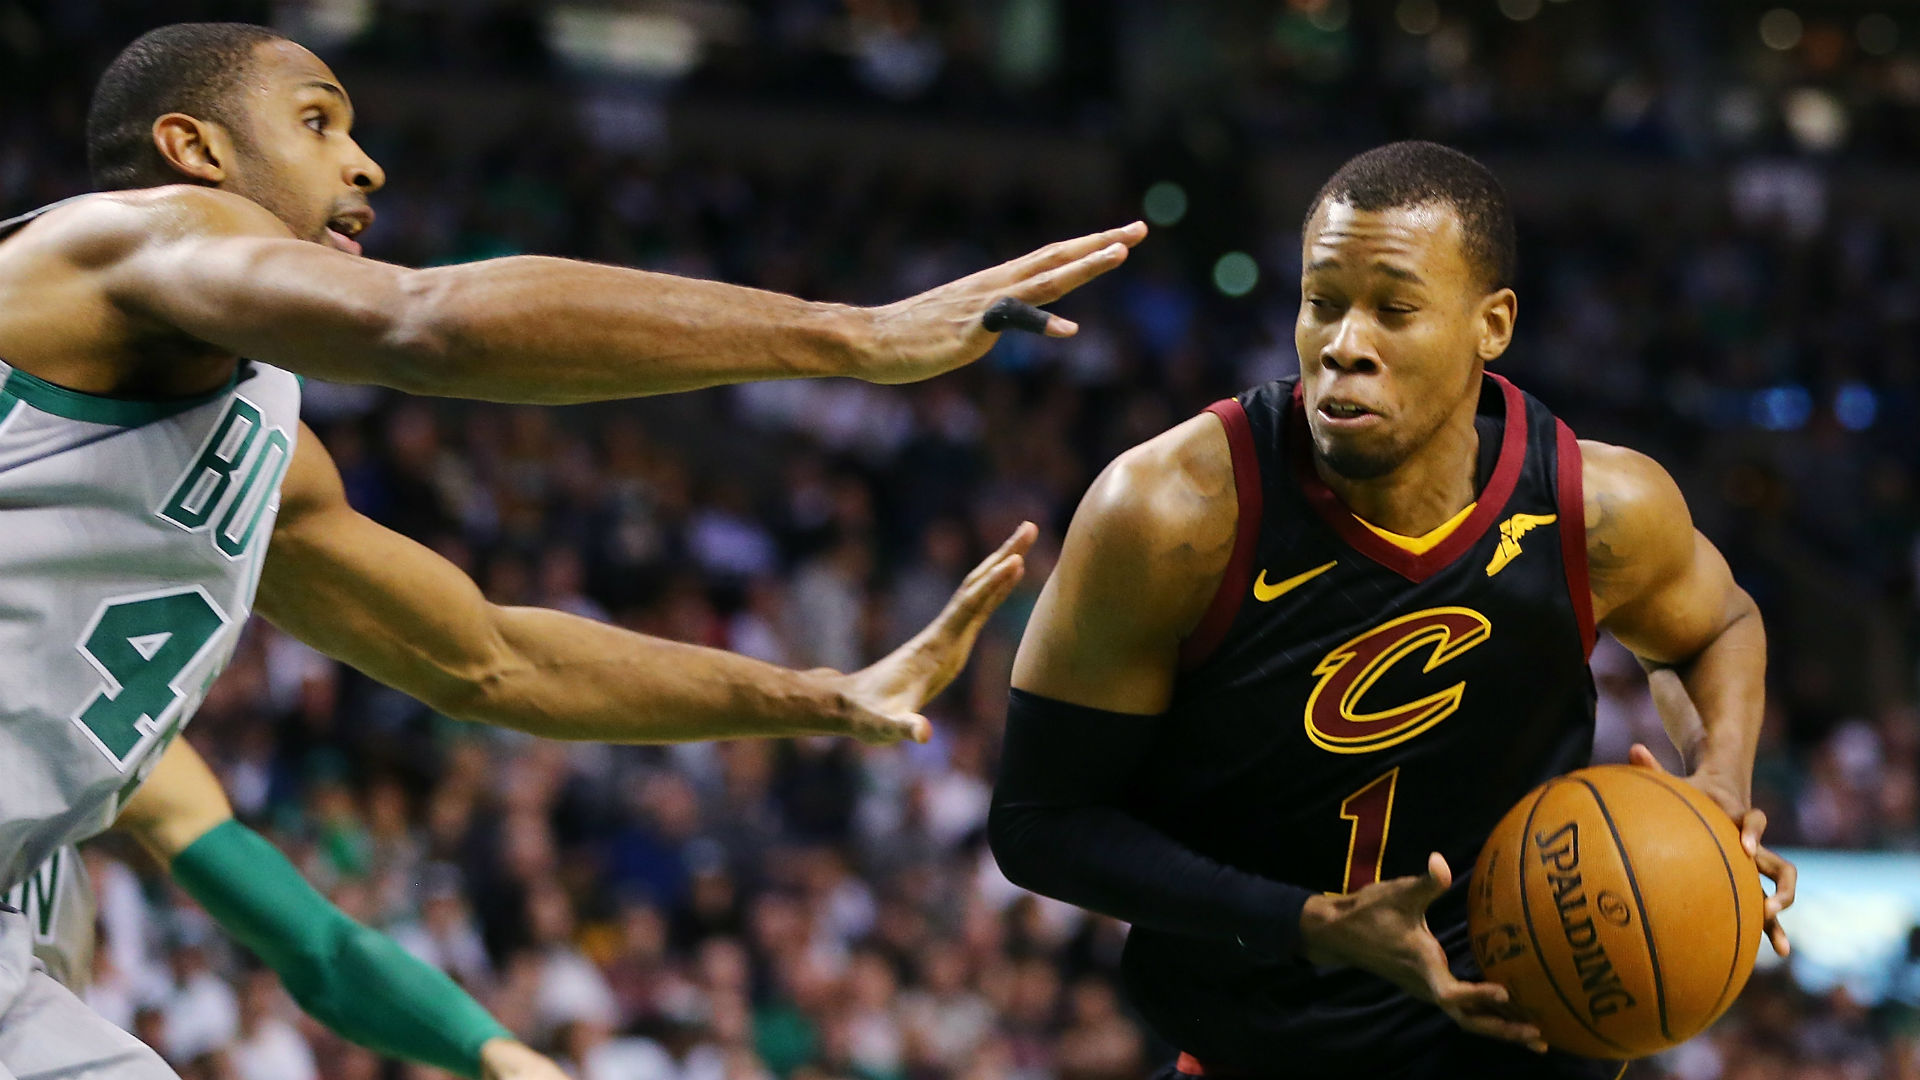 Larry Nance Jr. scores 5 points in Cavaliers win